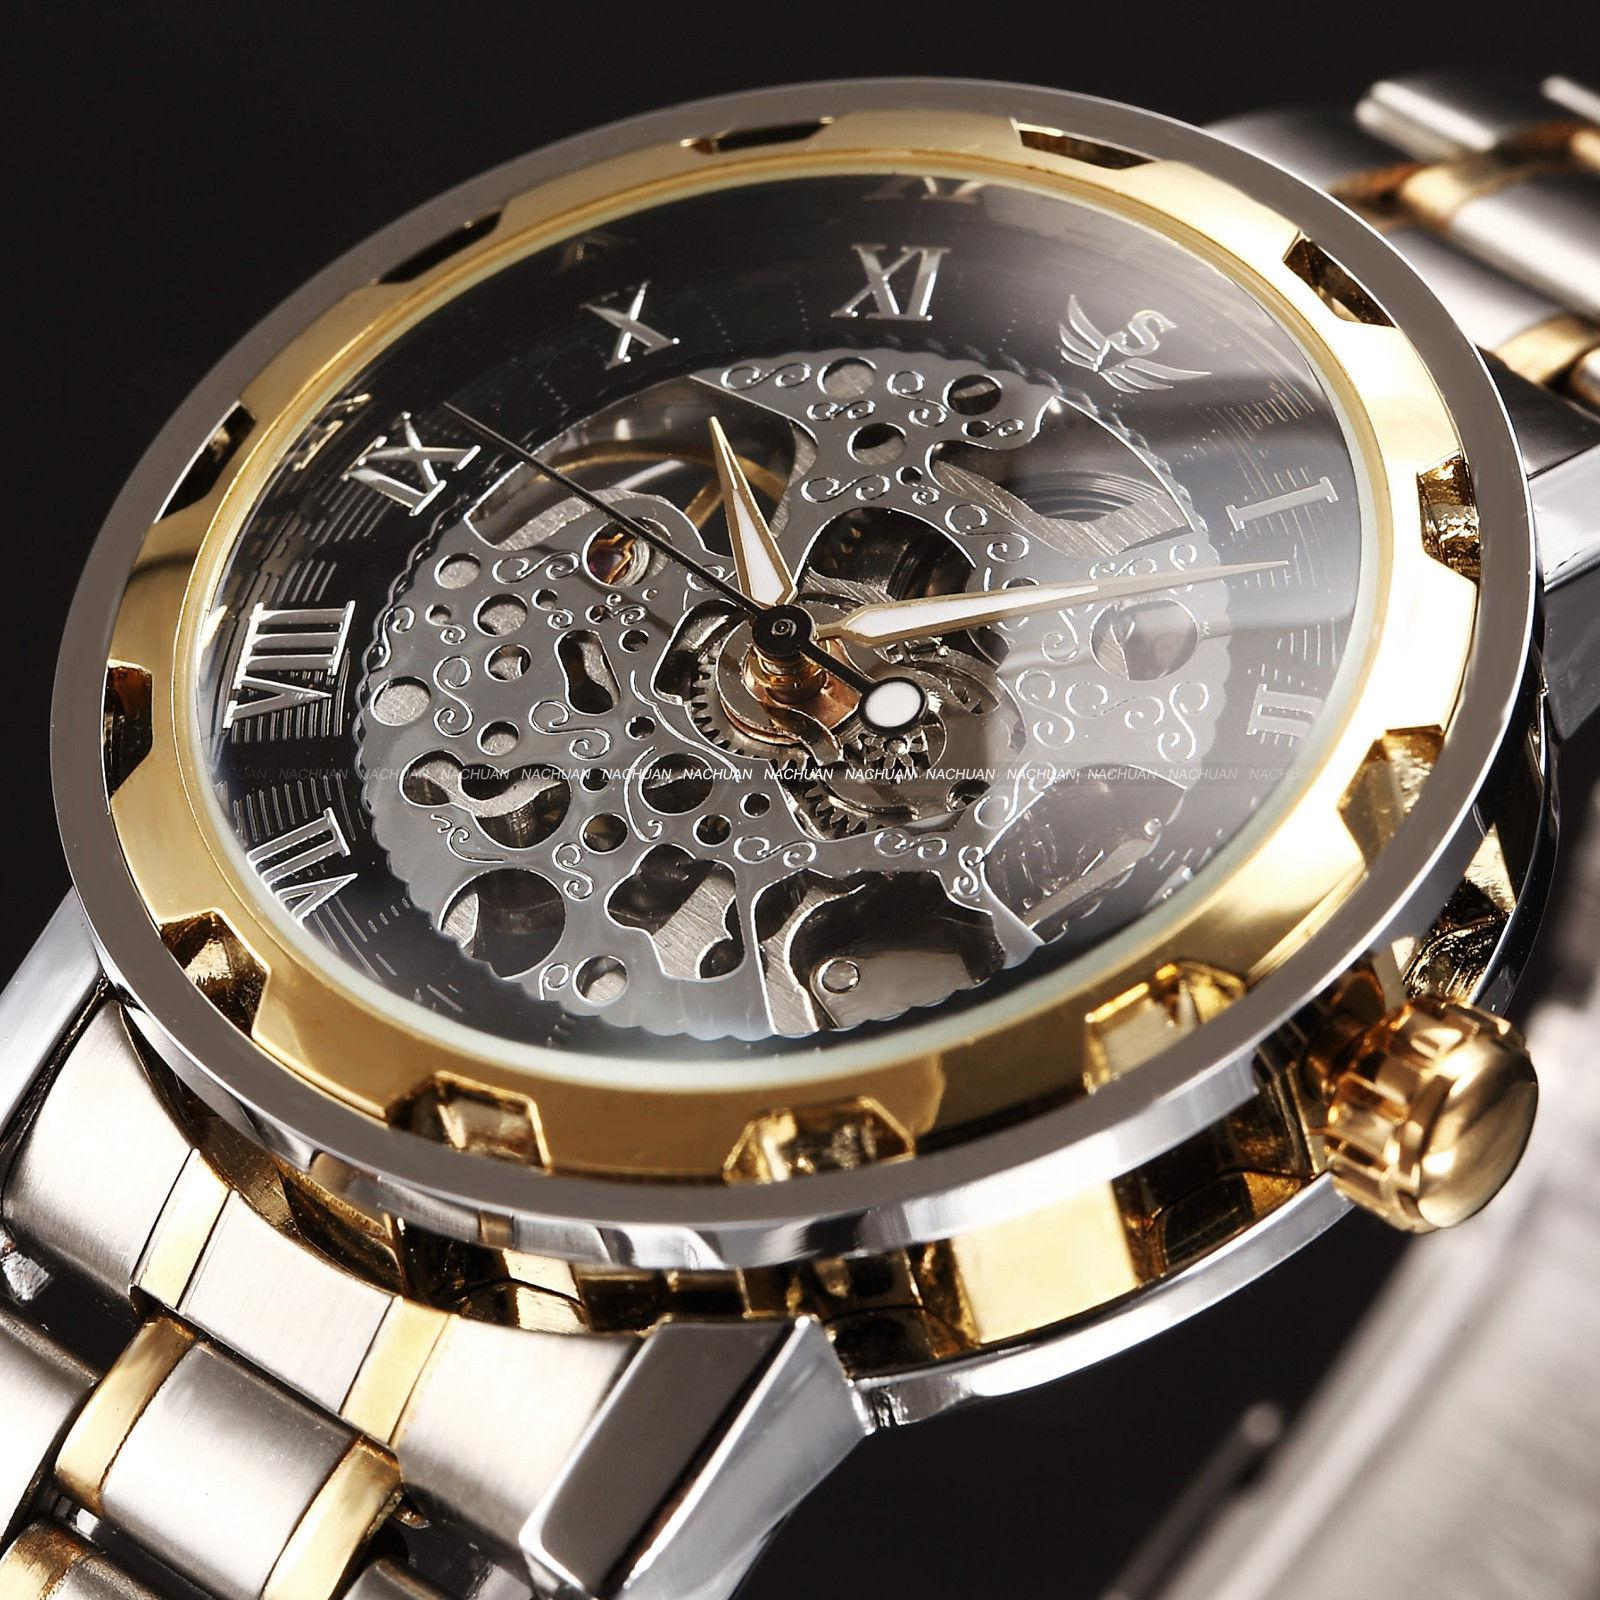 mens from sewor for vintage skeleton watches style rectangular men product new golden cntimi gold transparent expensive